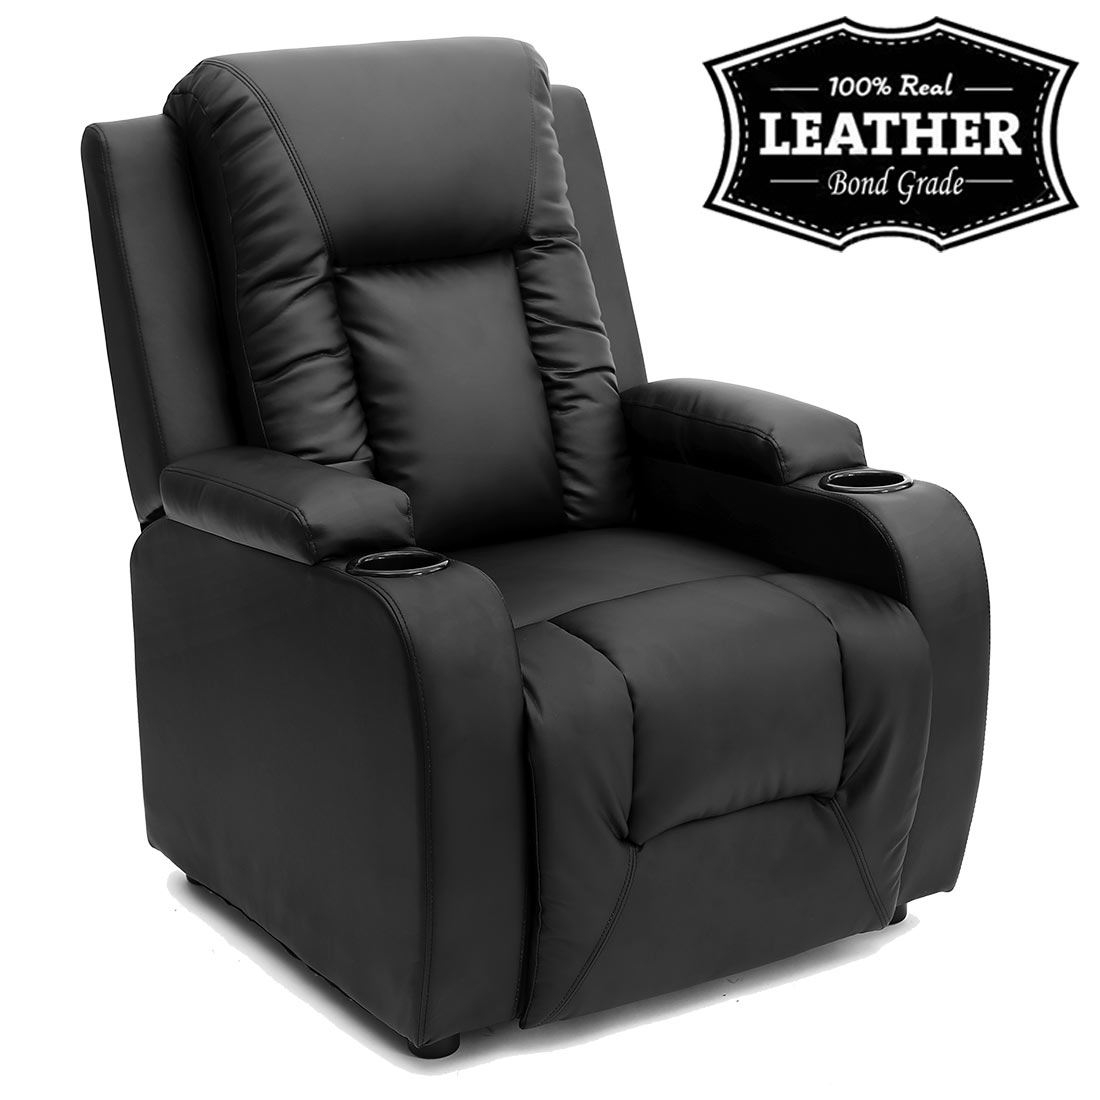 Oscar Leather Recliner W Drink Holders Armchair Sofa Chair Regarding Sofa Chair Recliner (Image 11 of 15)